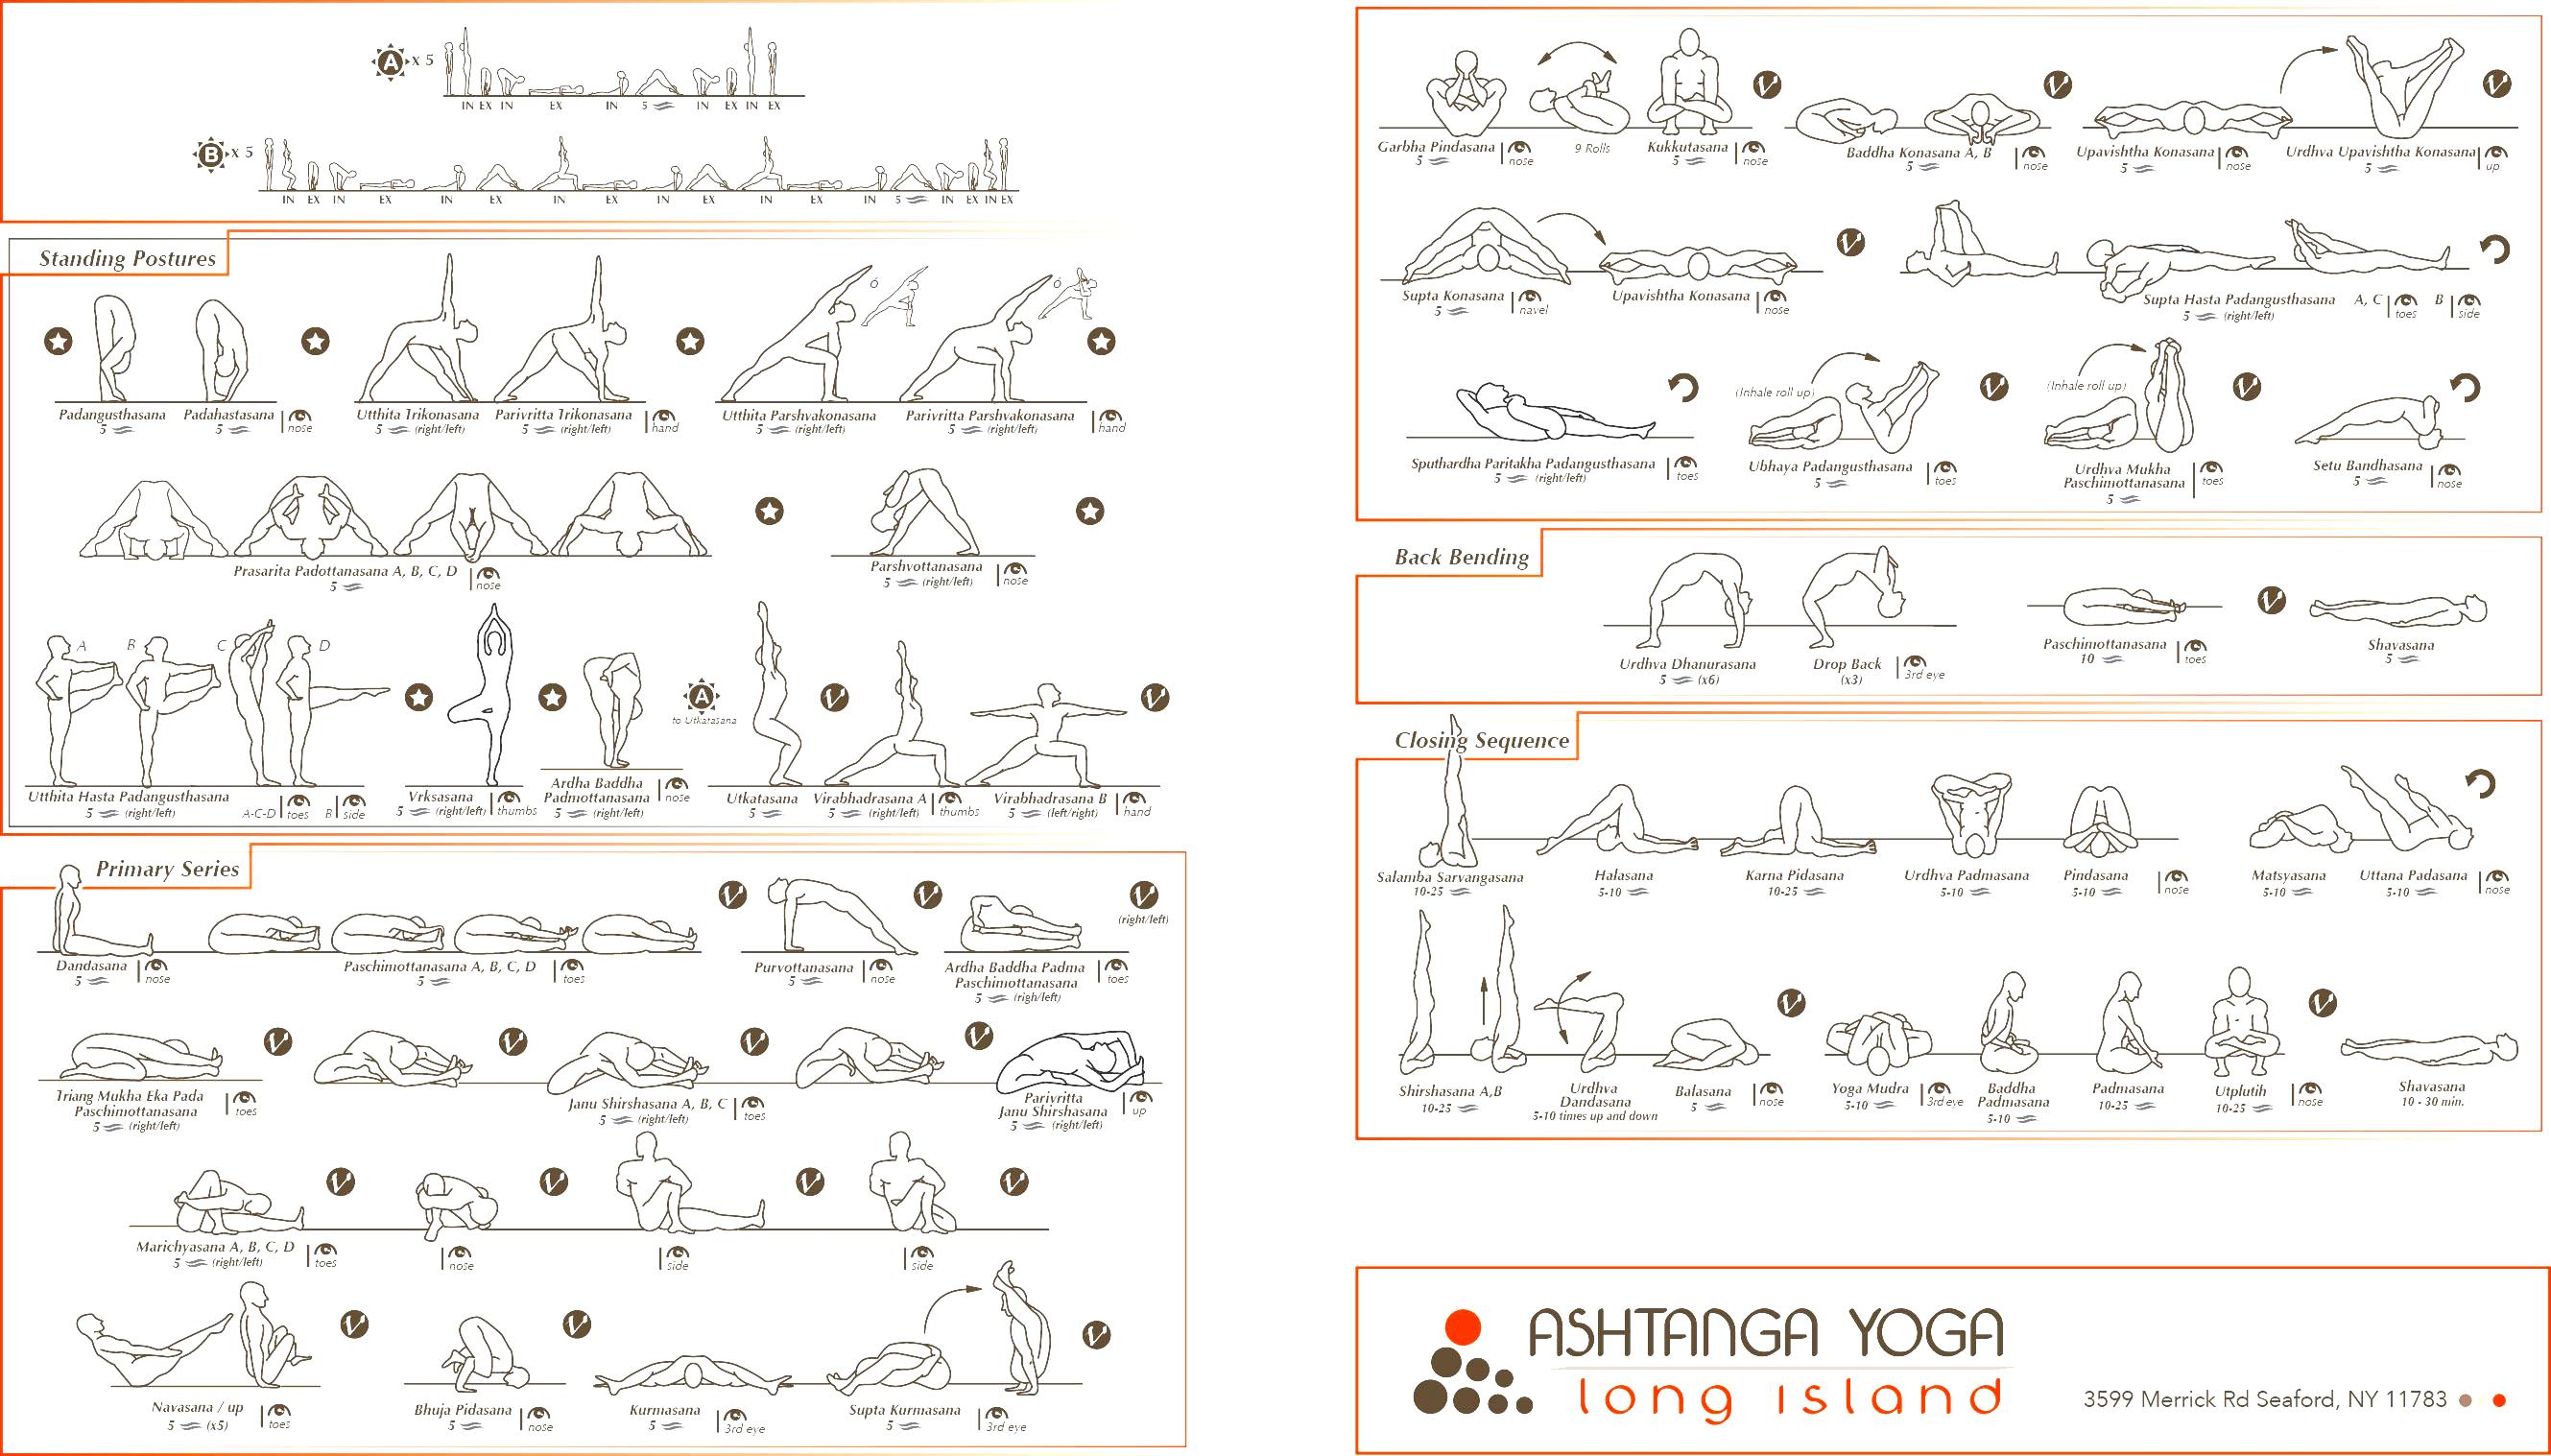 Ashtanga Vinyasa Yoga Poses Pdf | Workout Krtsy